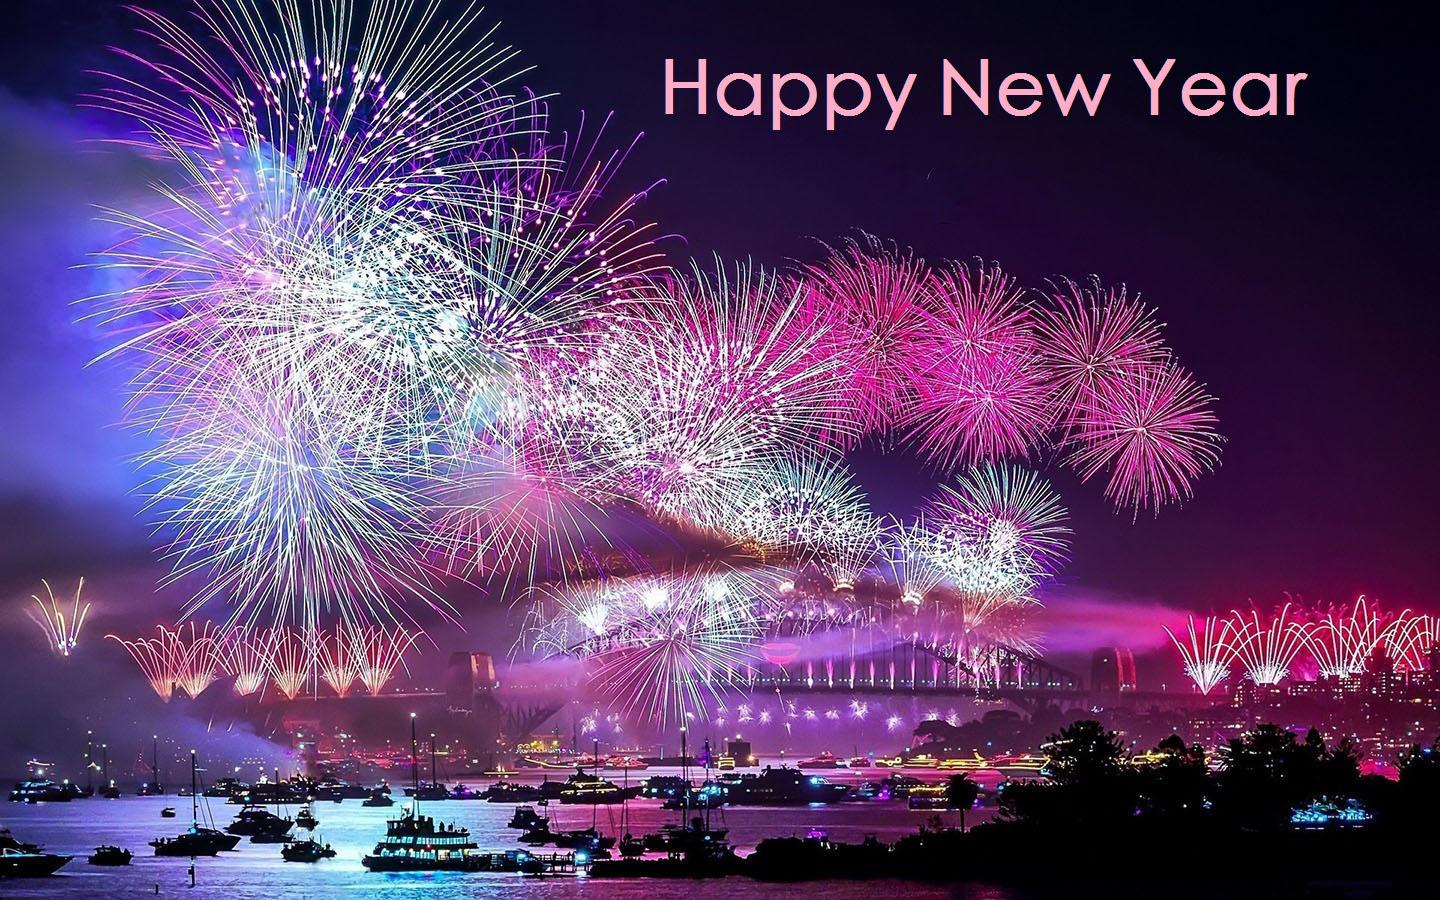 Happy New Year The World's Best Places To Celebrate